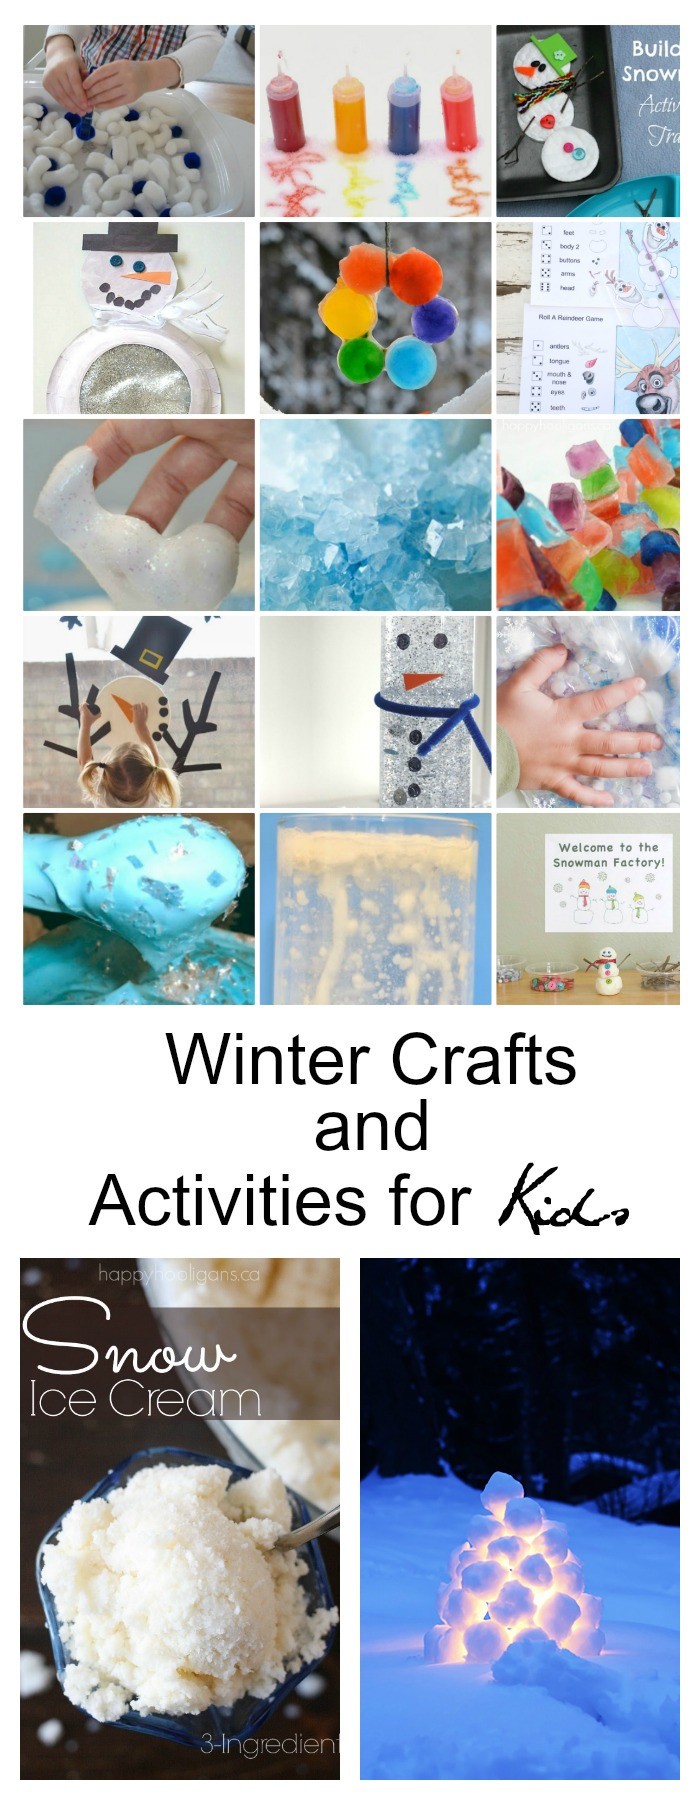 Best ideas about Winter Crafts For Kids . Save or Pin Winter Crafts and Activities for Kids The Idea Room Now.